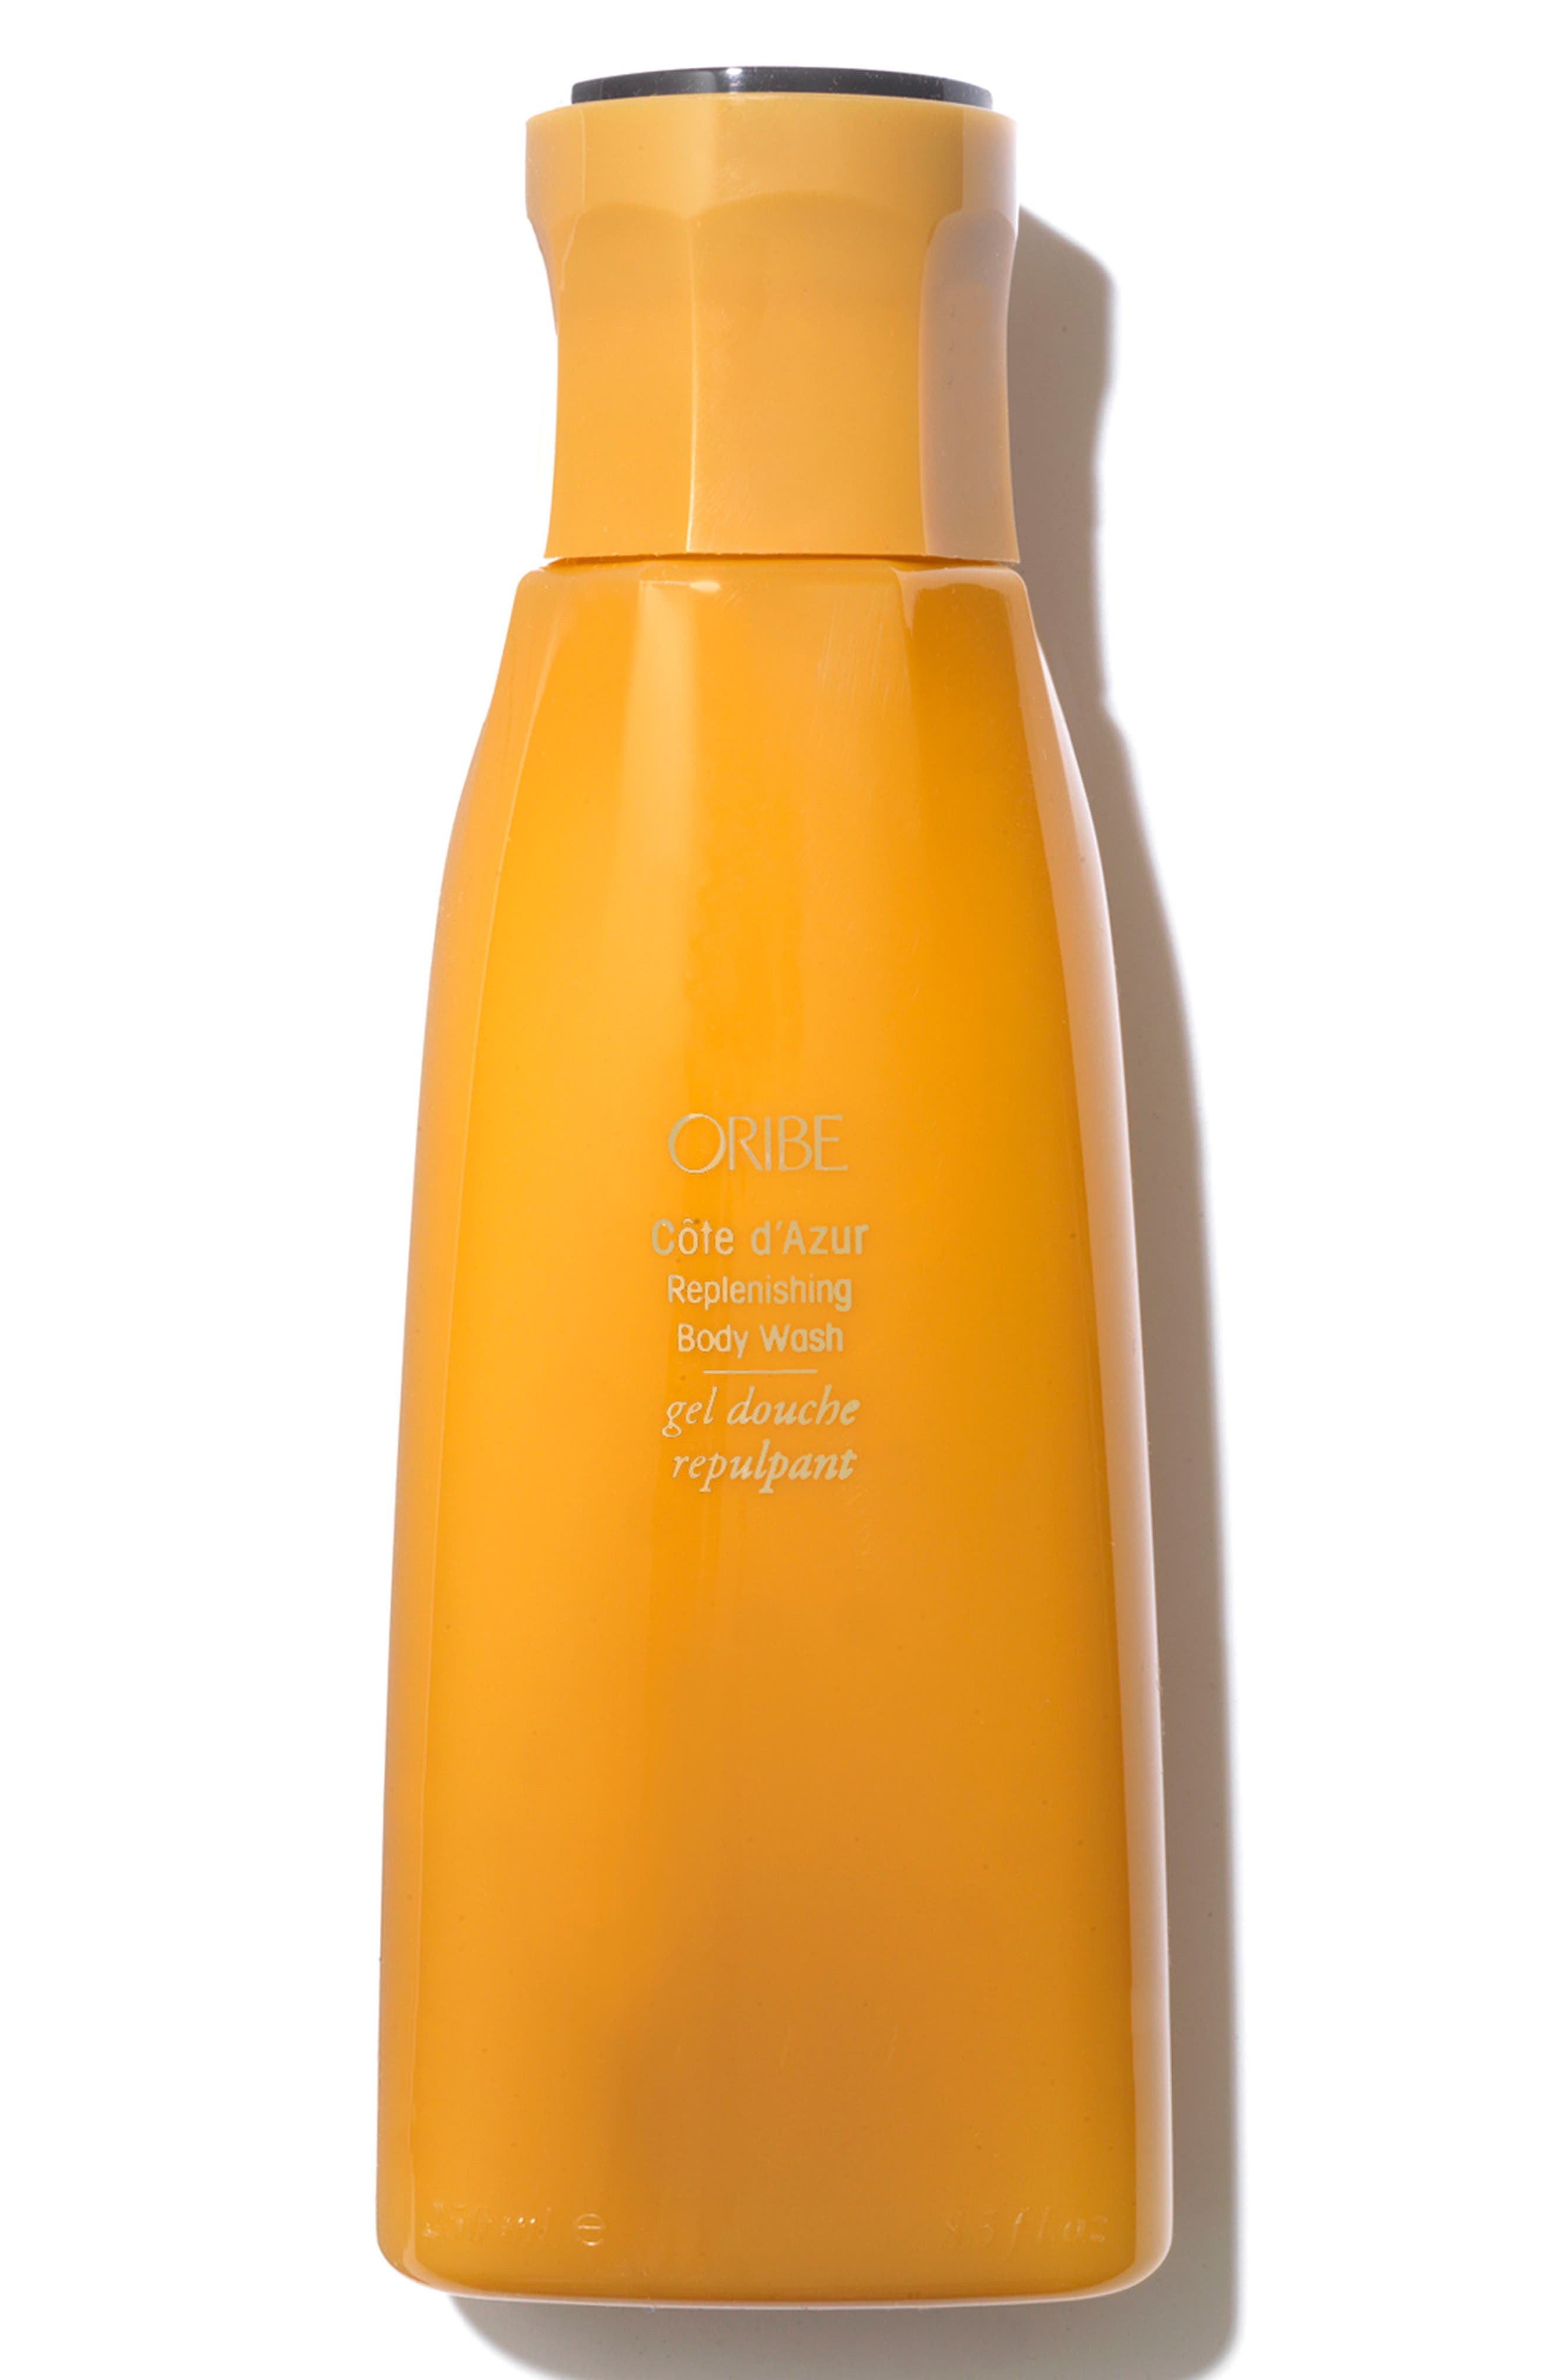 SPACE.NK.apothecary Oribe Côte d'Azur Replenishing Body Wash